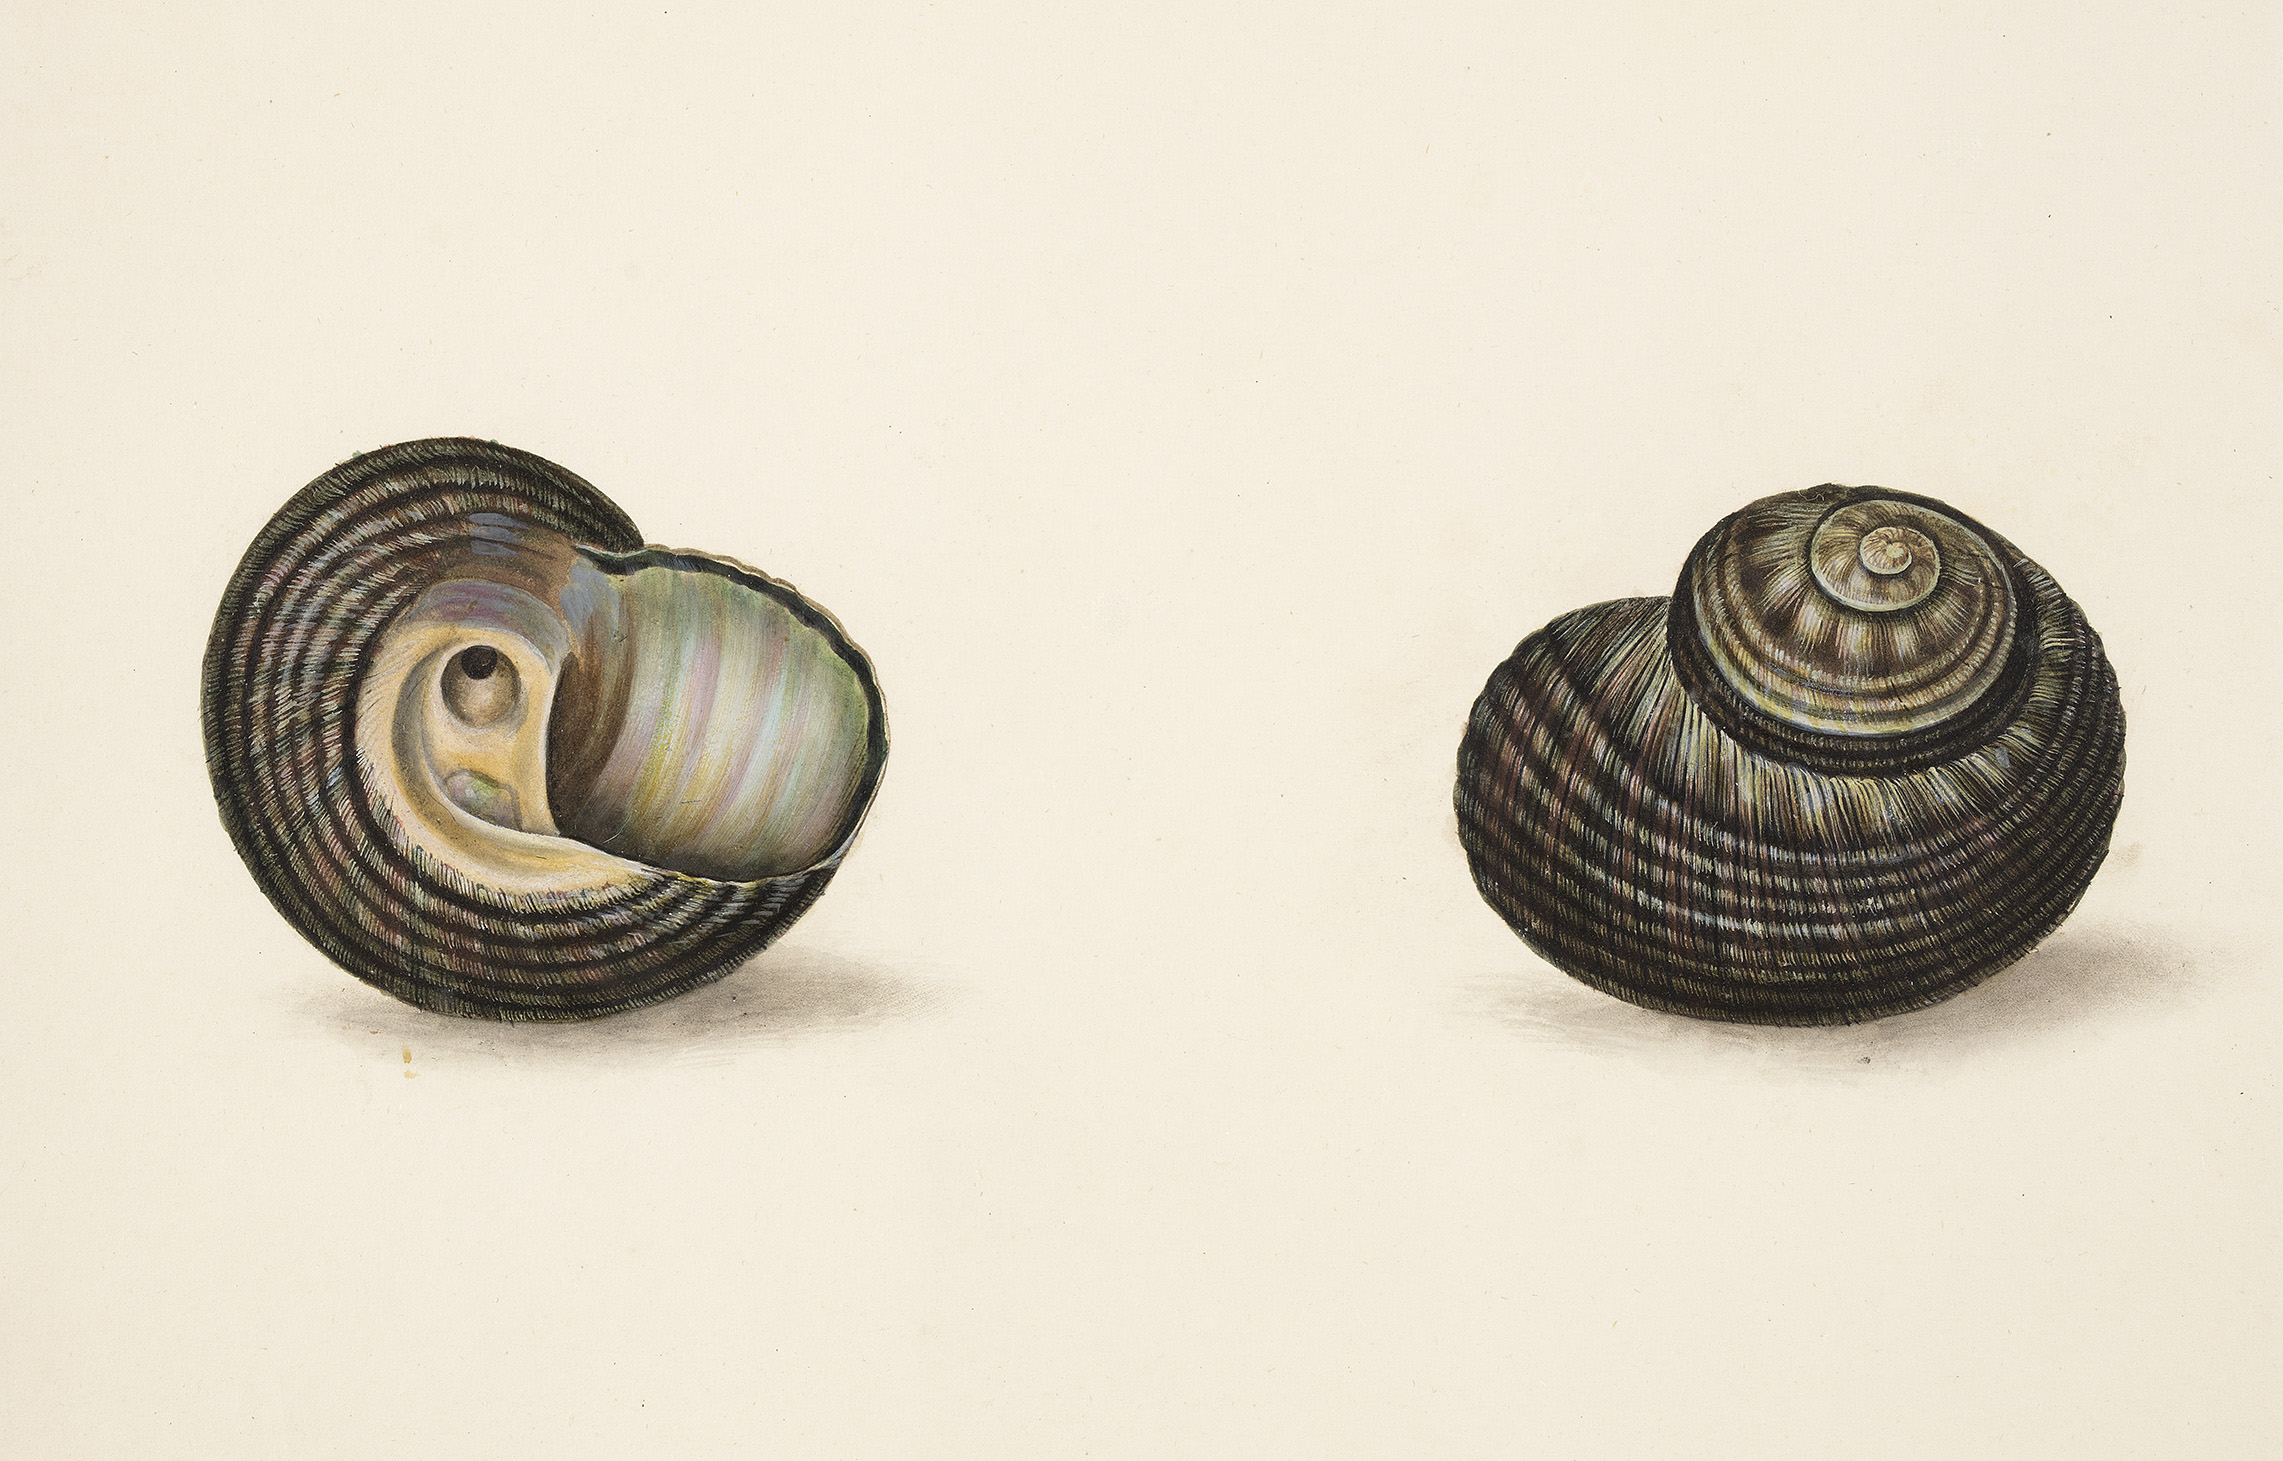 Fimbriatum – Falkland Islands, detail from The Universal Conchologist, 1784, by Thomas Martyn